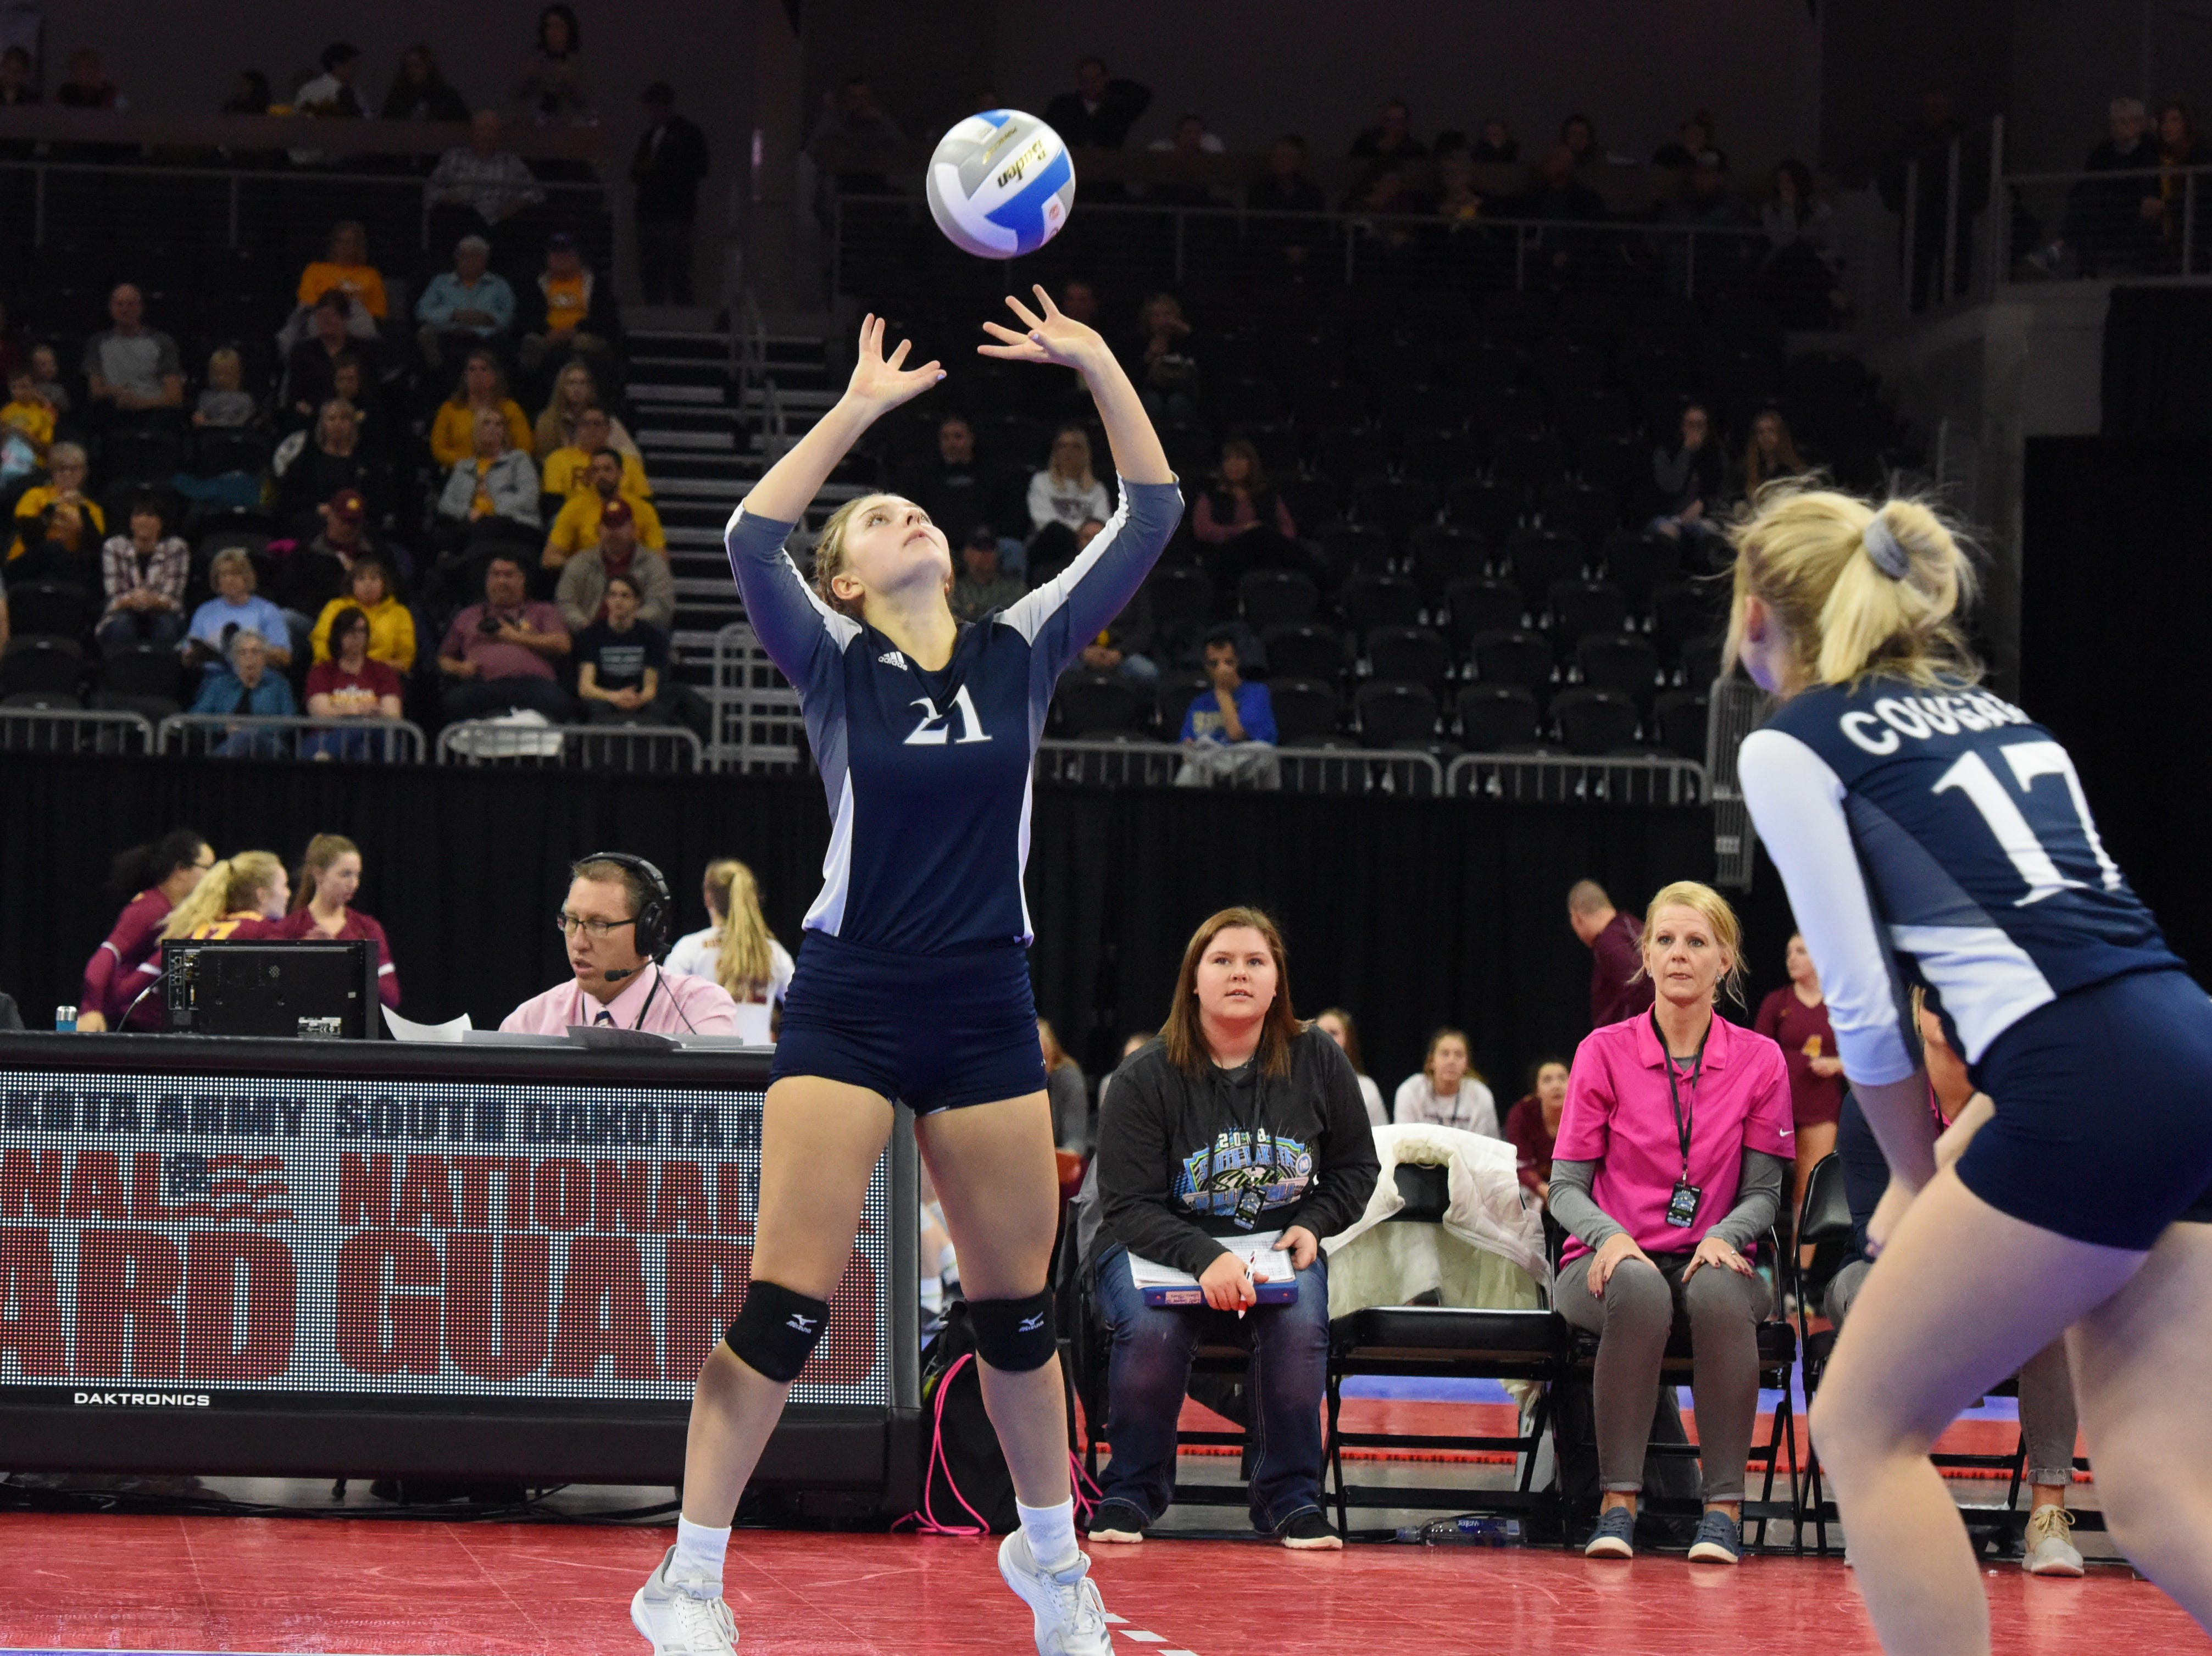 Burke's Sally Hakin (21) sets the ball during a match against Ethan, Friday, Nov. 16, 2018, at the Denny Sanford Premier Center in Sioux Falls, S.D.